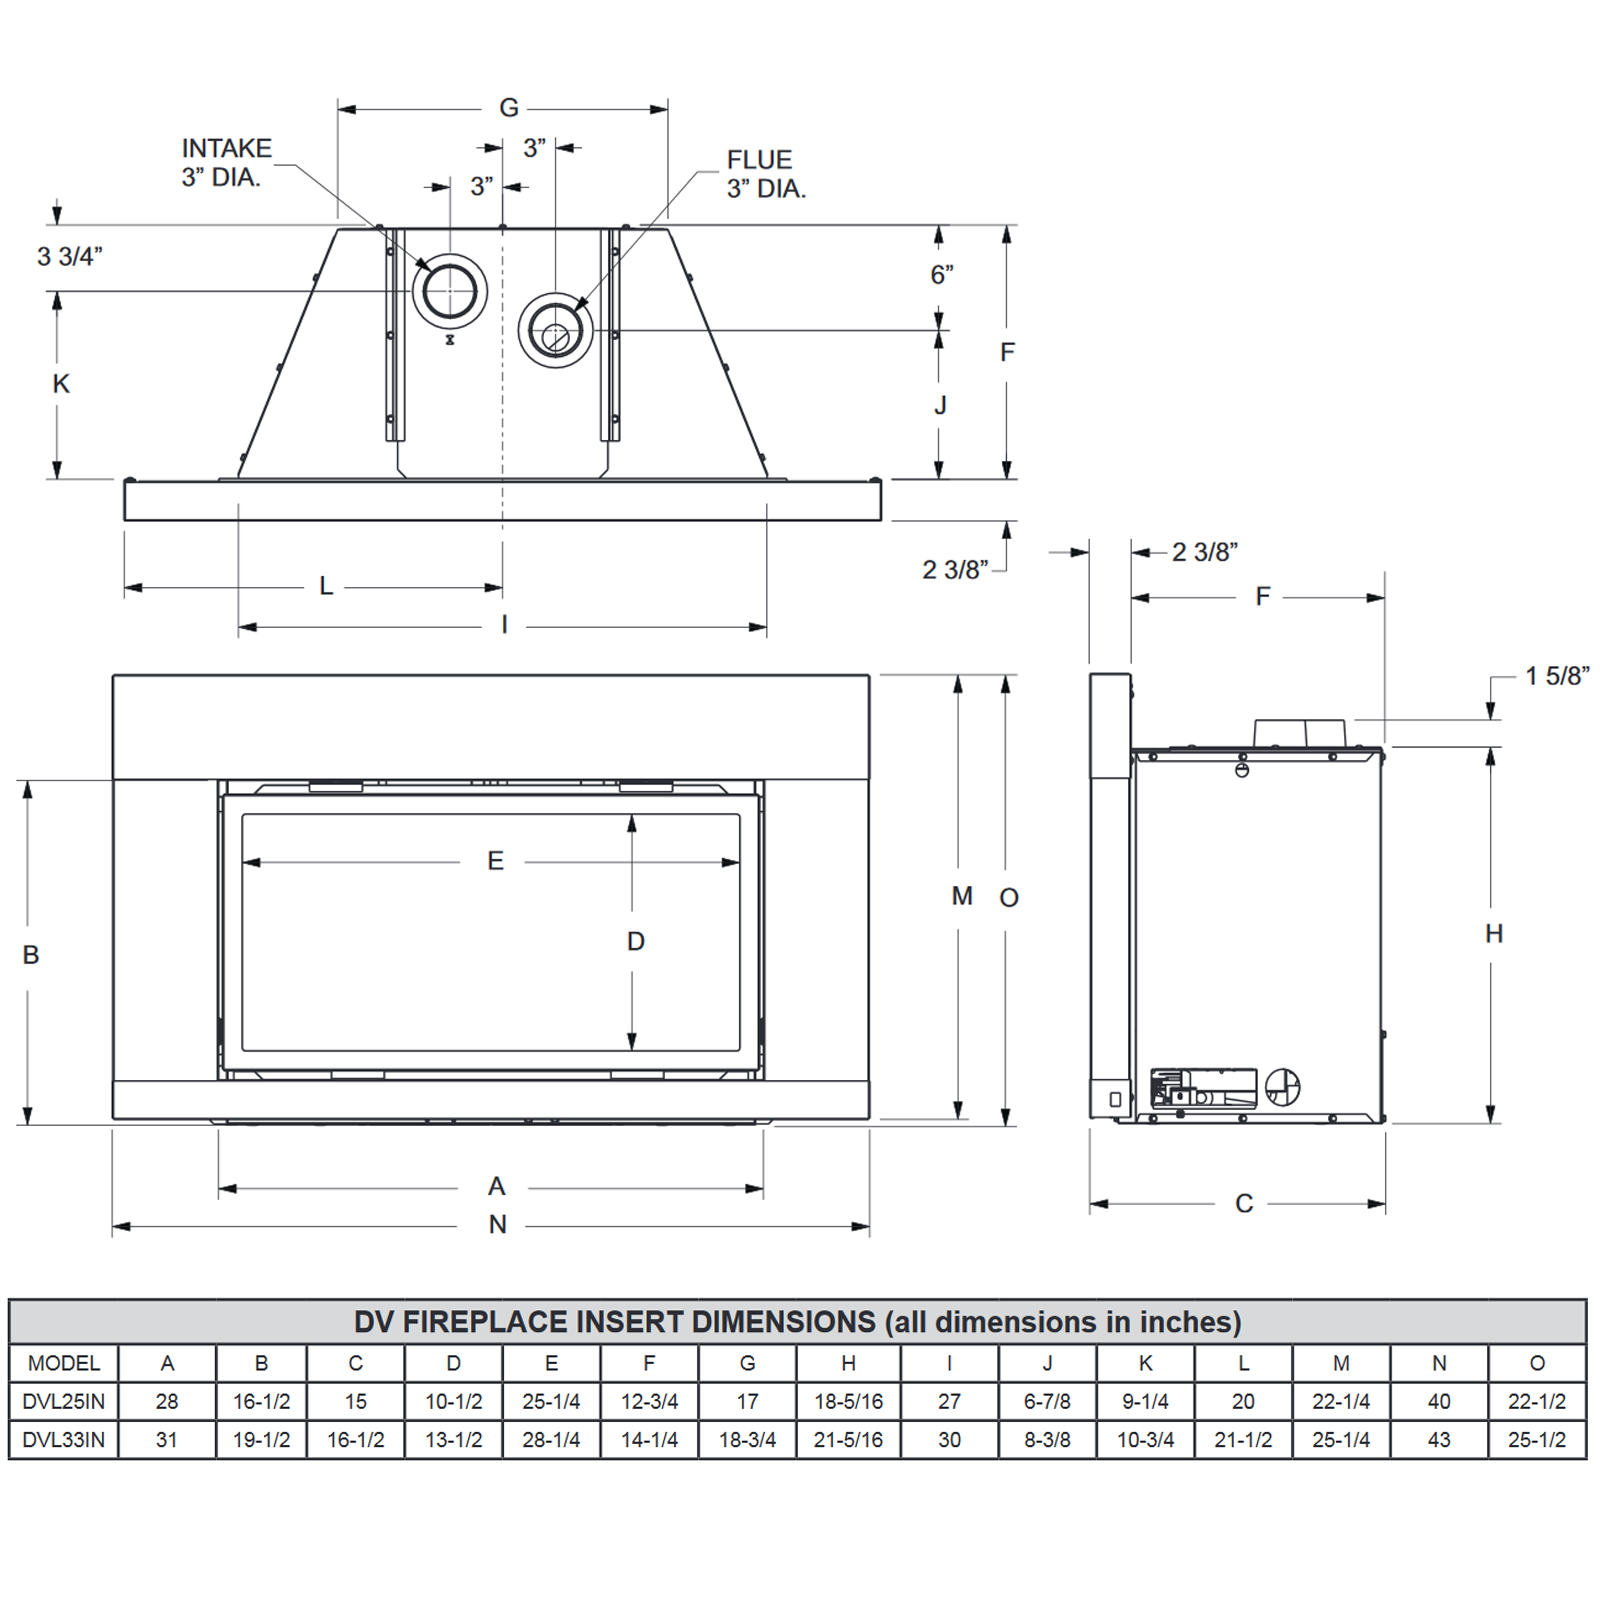 DVL33 Technical Drawing 1